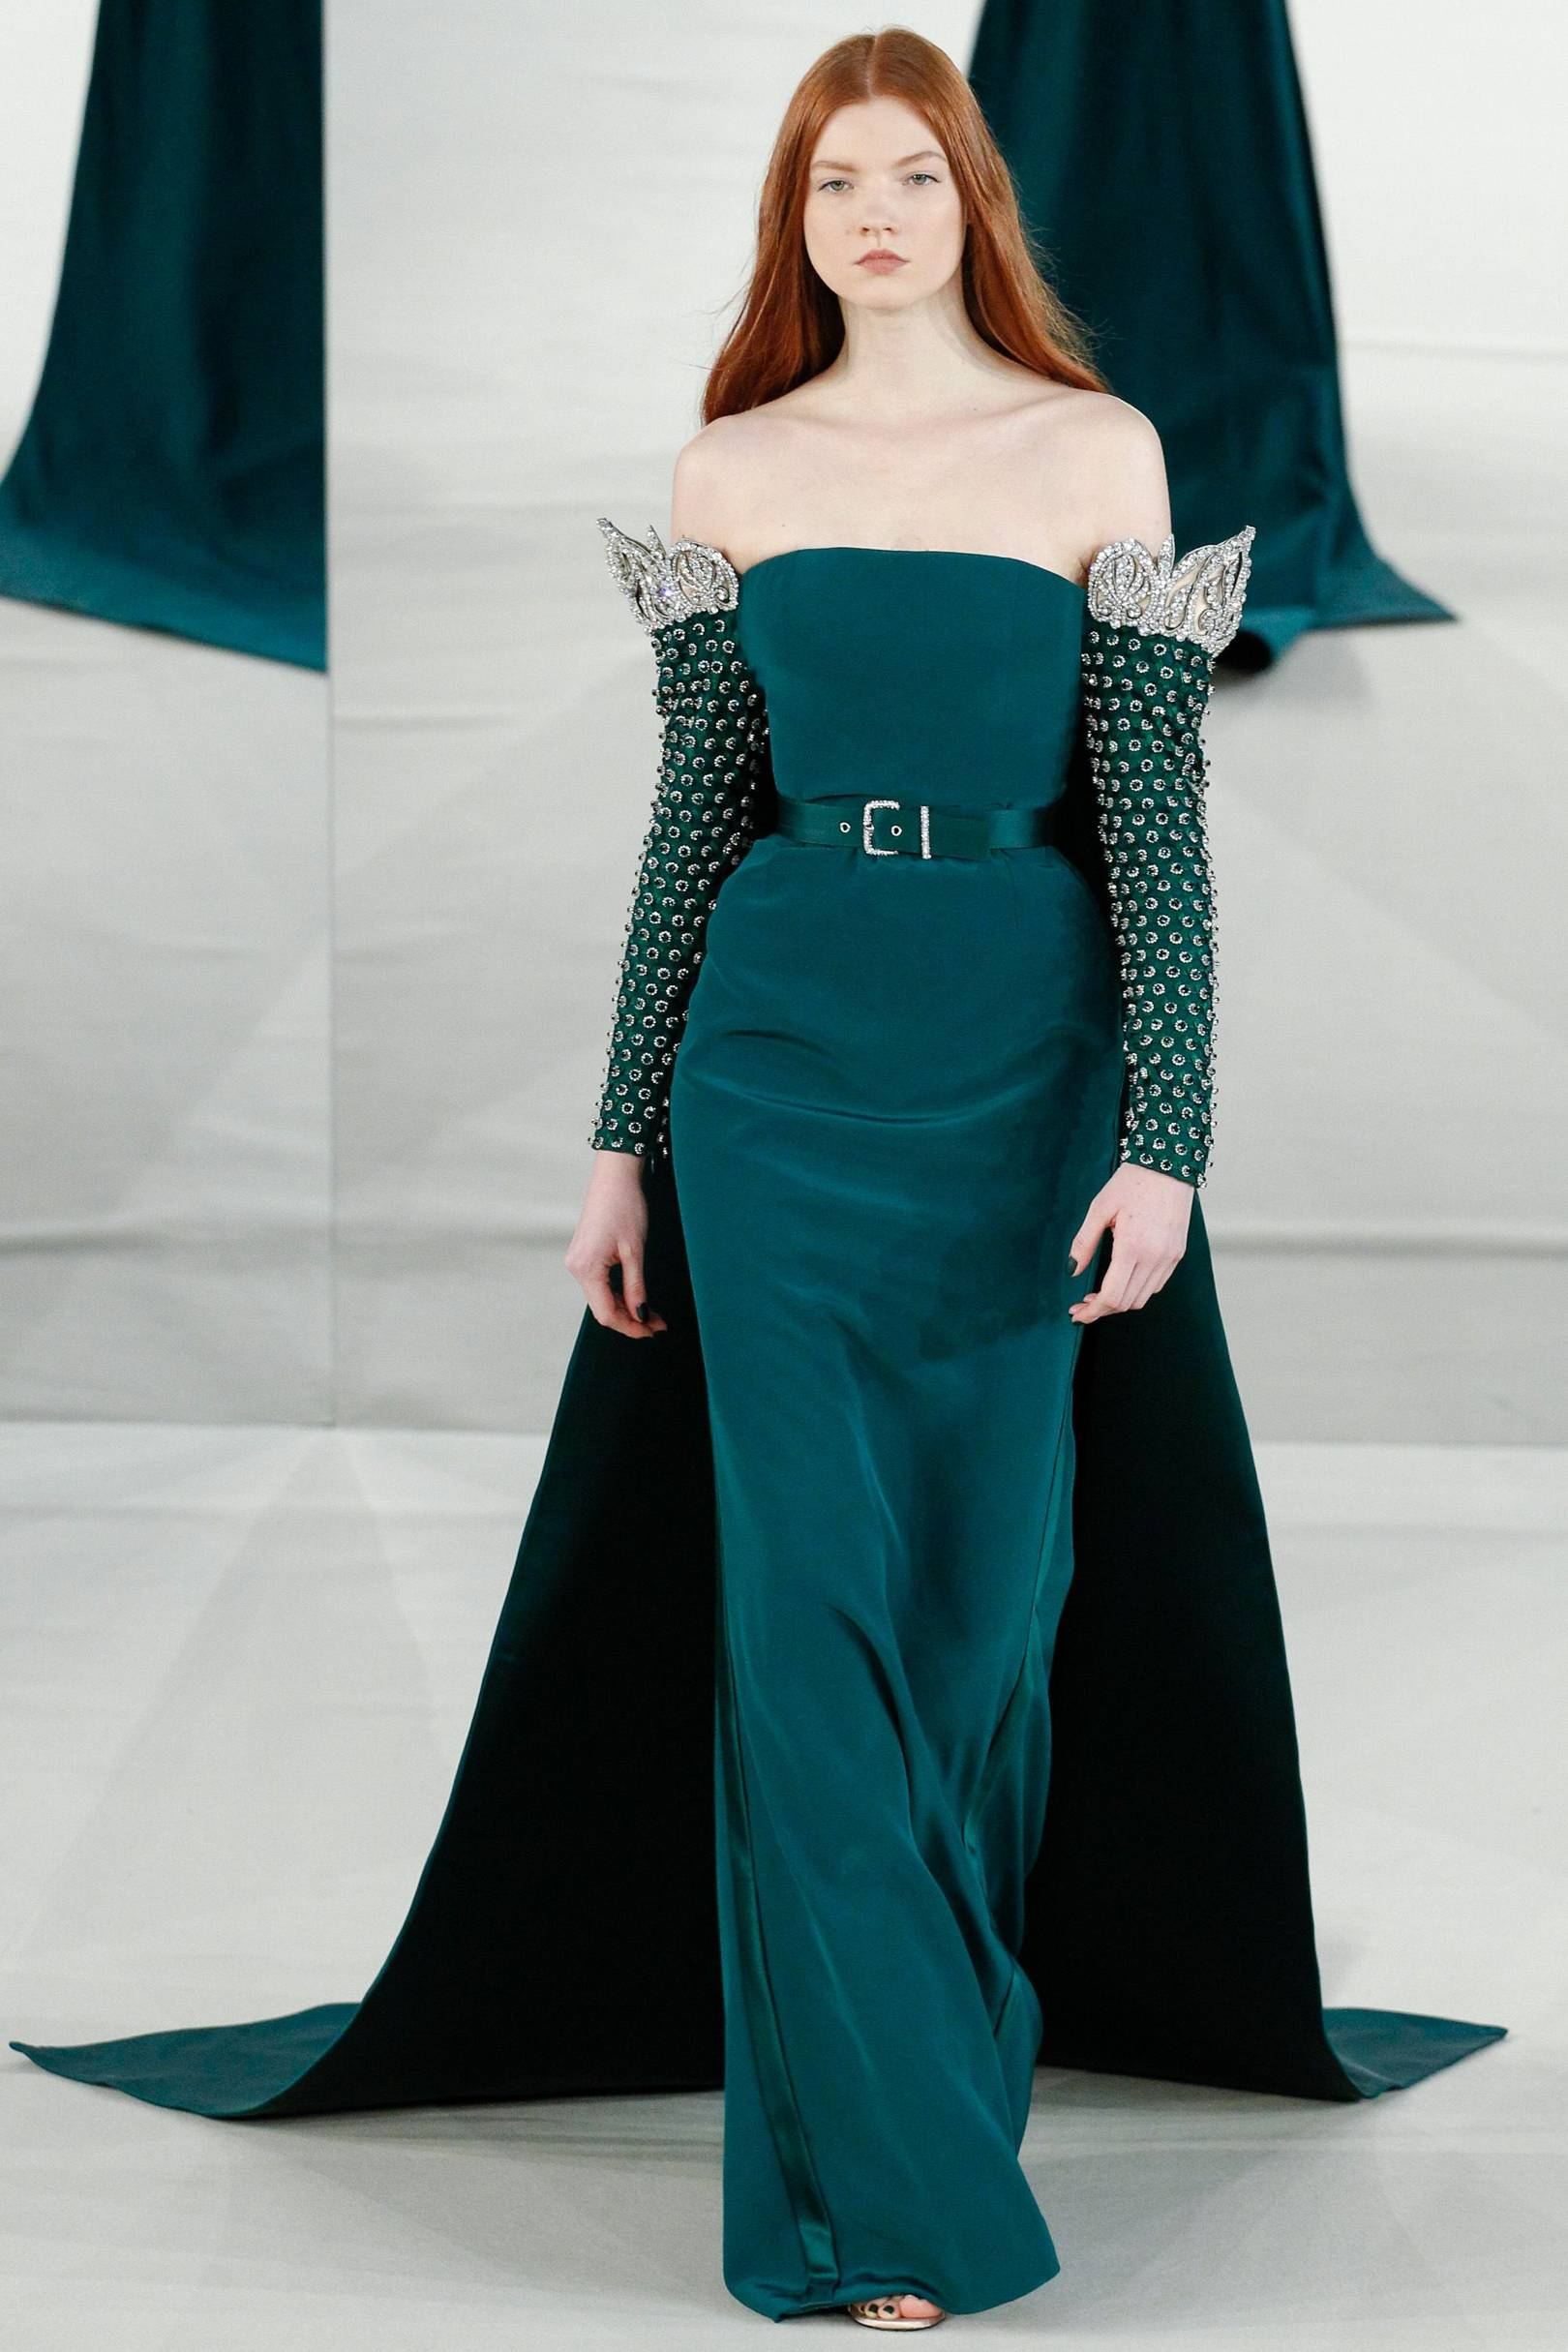 These 20 Couture Gowns Are Serious Prom Inspiration | British Vogue